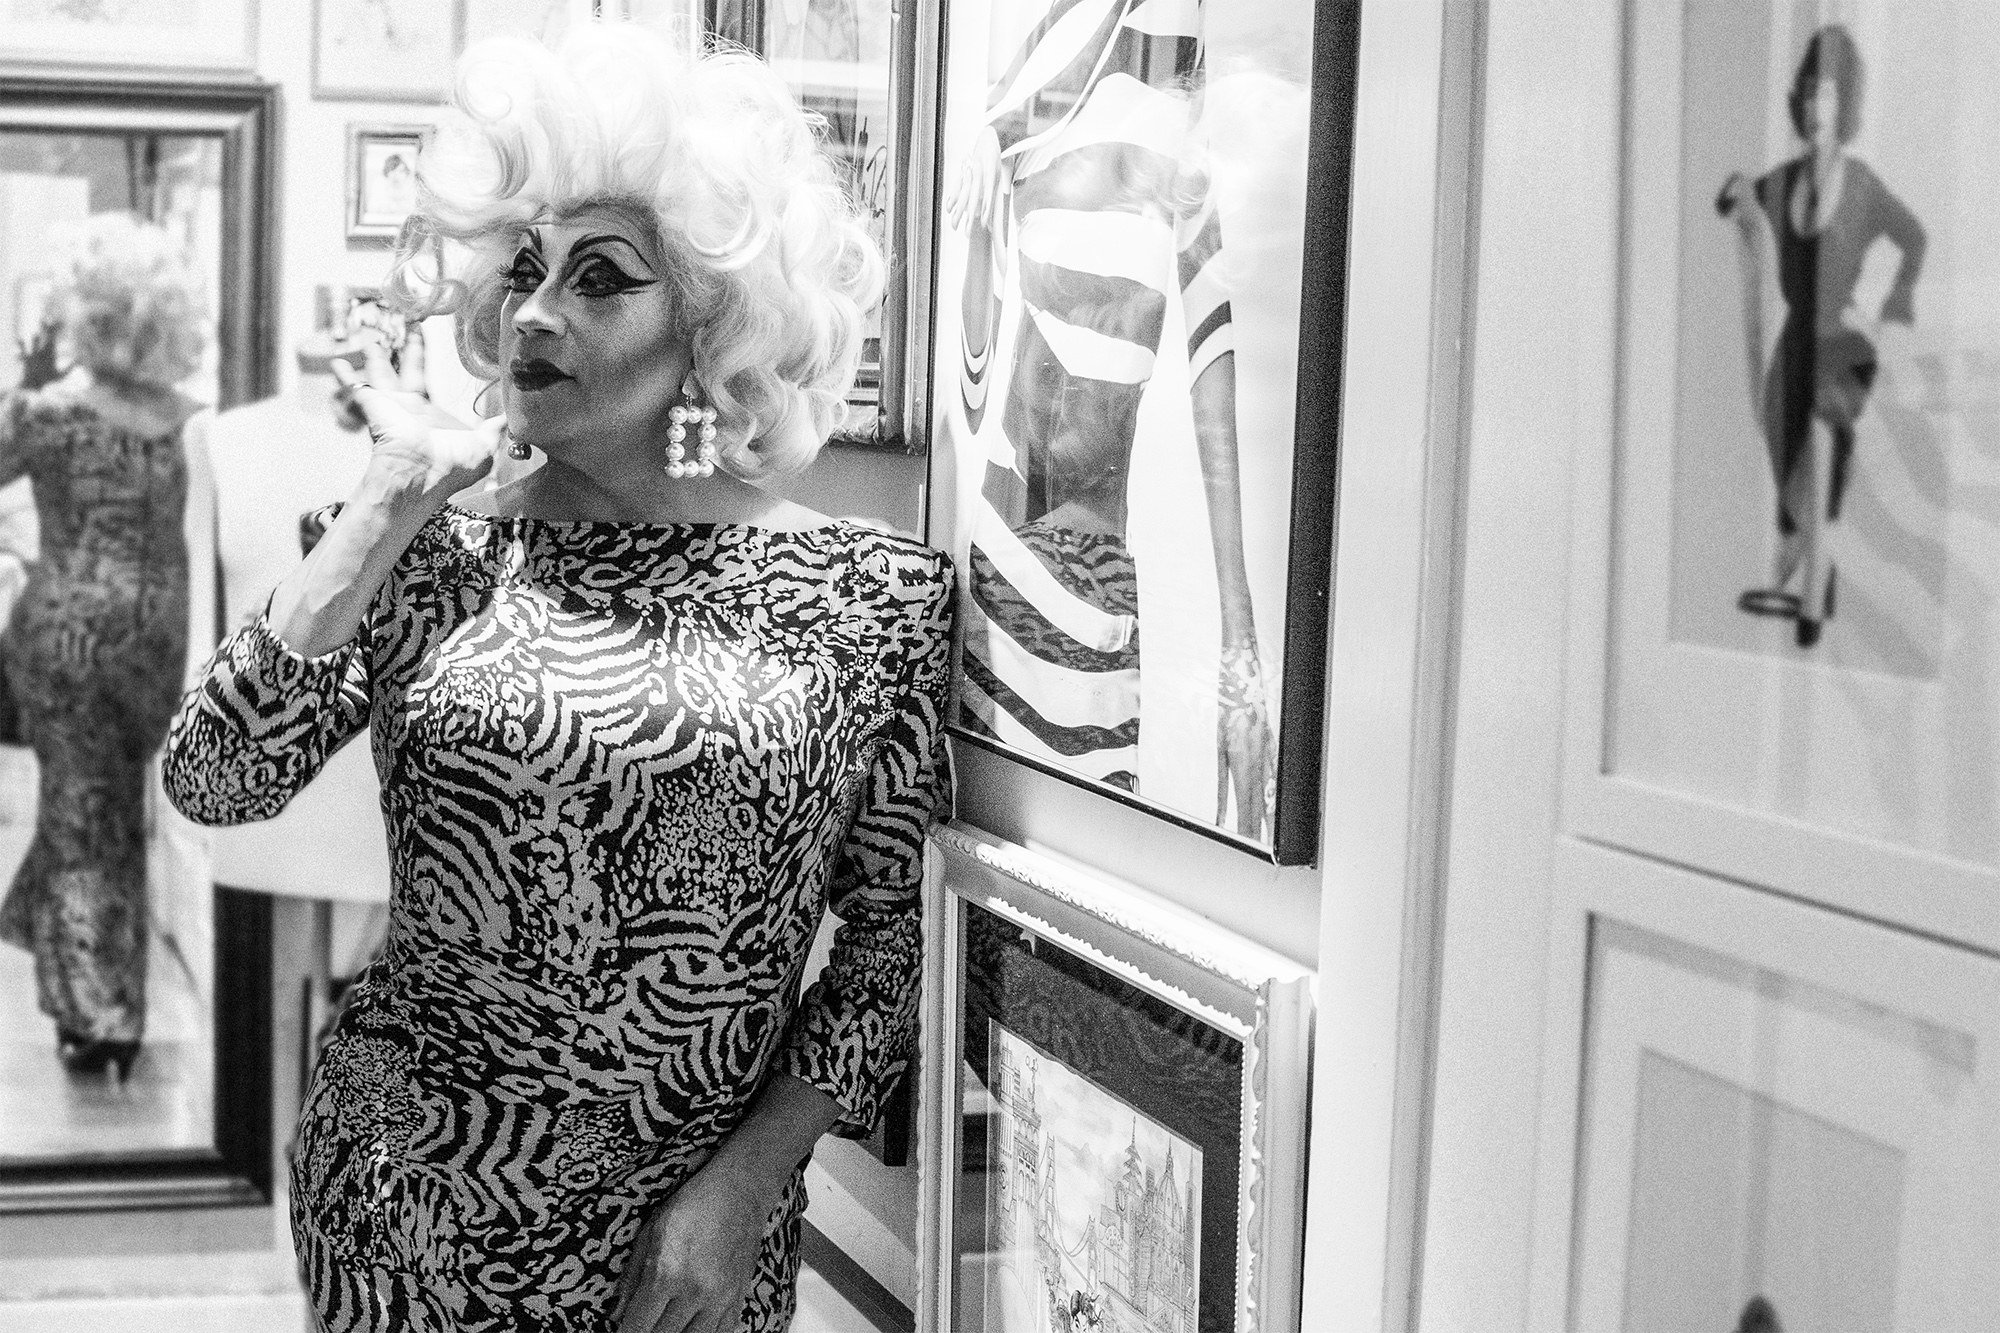 Juanita More! in her Nob Hill apartment, effortlessly being chic amongst the artist rendering of her many years in the drag and queer scene.